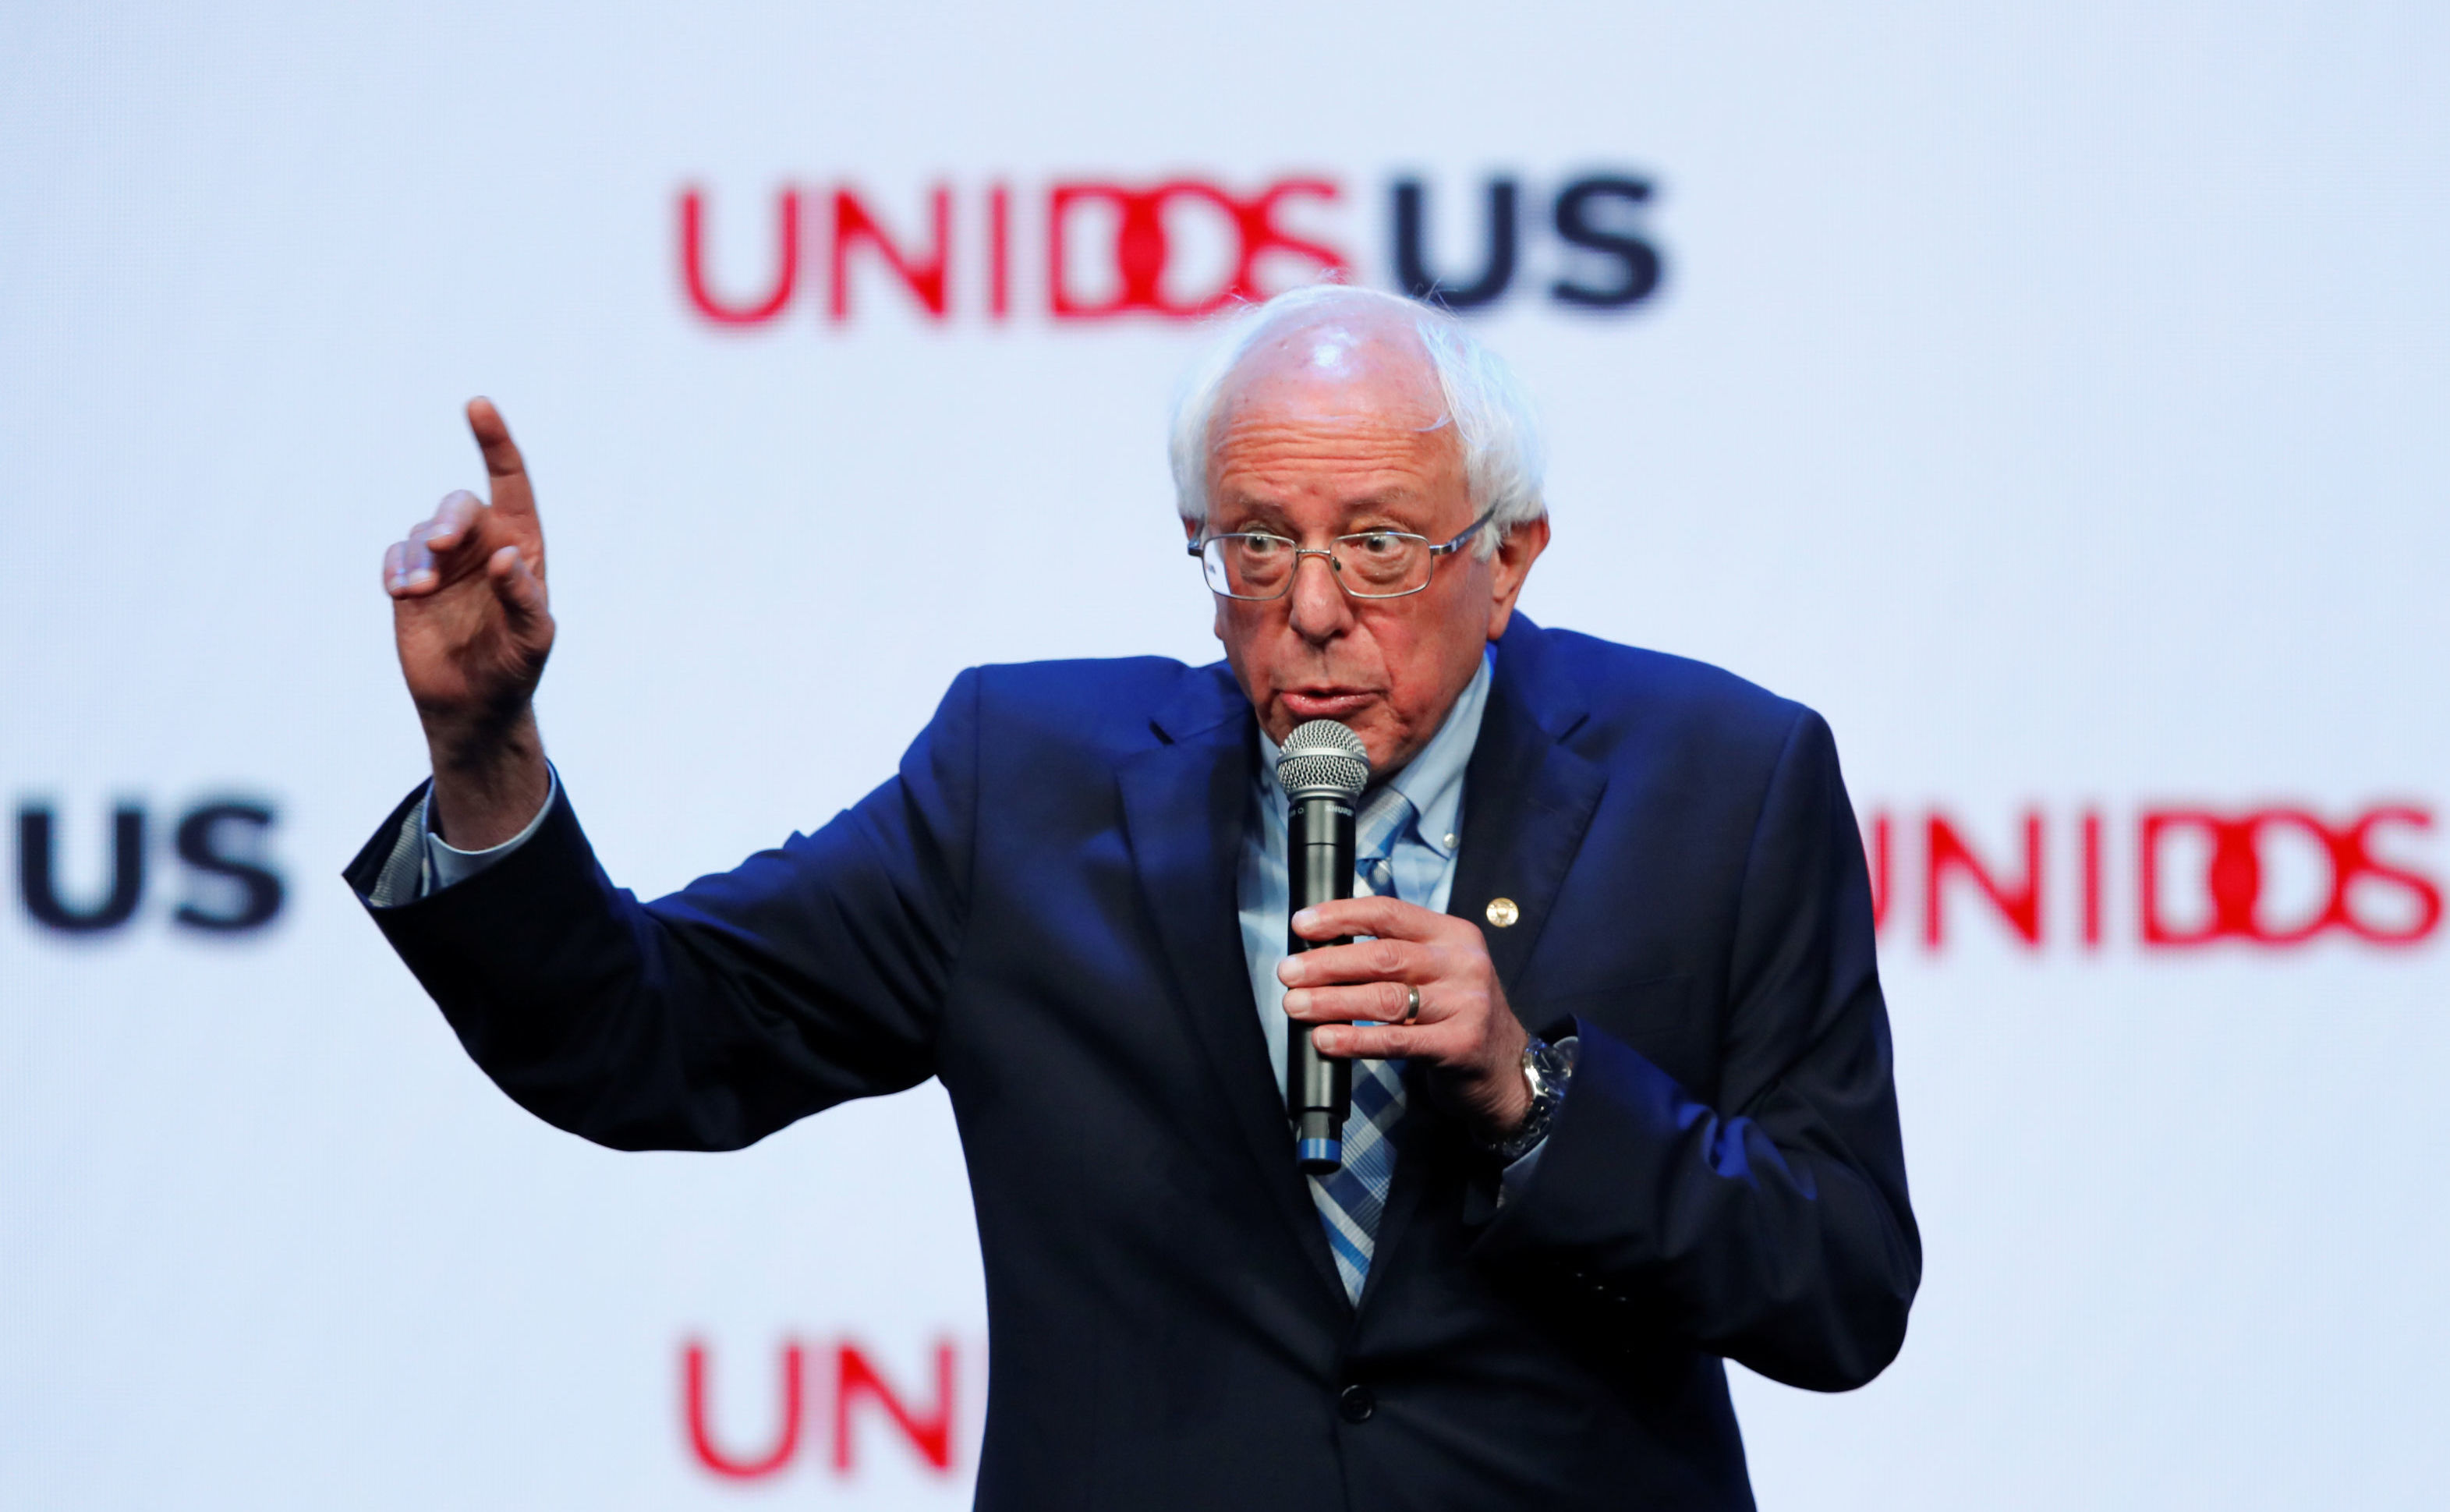 Democratic 2020 presidential candidate and U.S. Senator Bernie Sanders gestures as he speaks at the UnidosUS Annual Conference, in San Diego, California, U.S., August 5, 2019